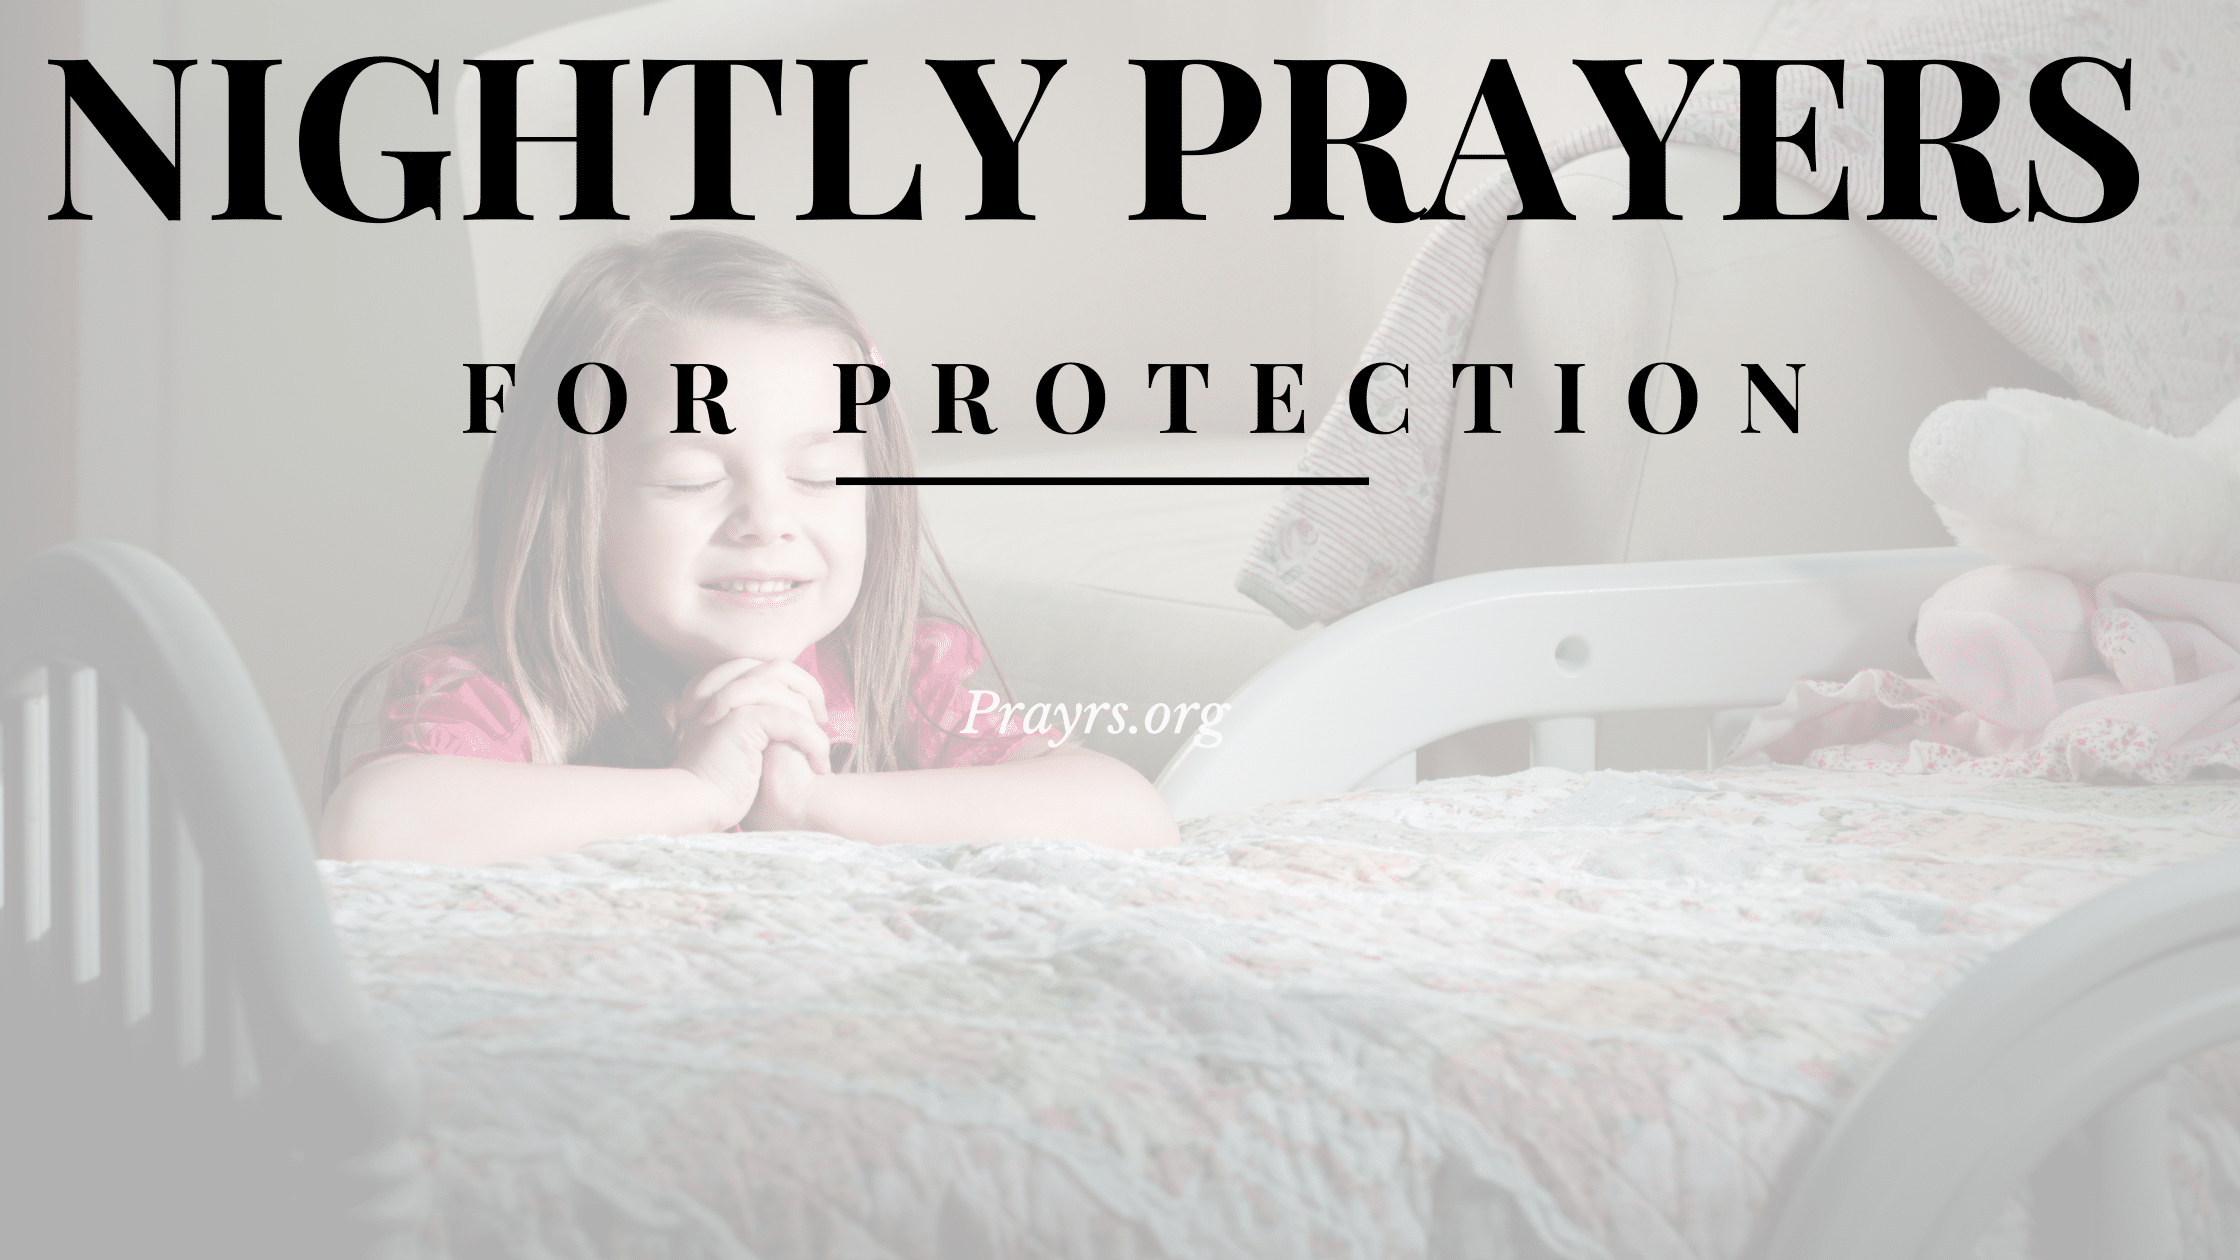 Nightly Prayers for Protection